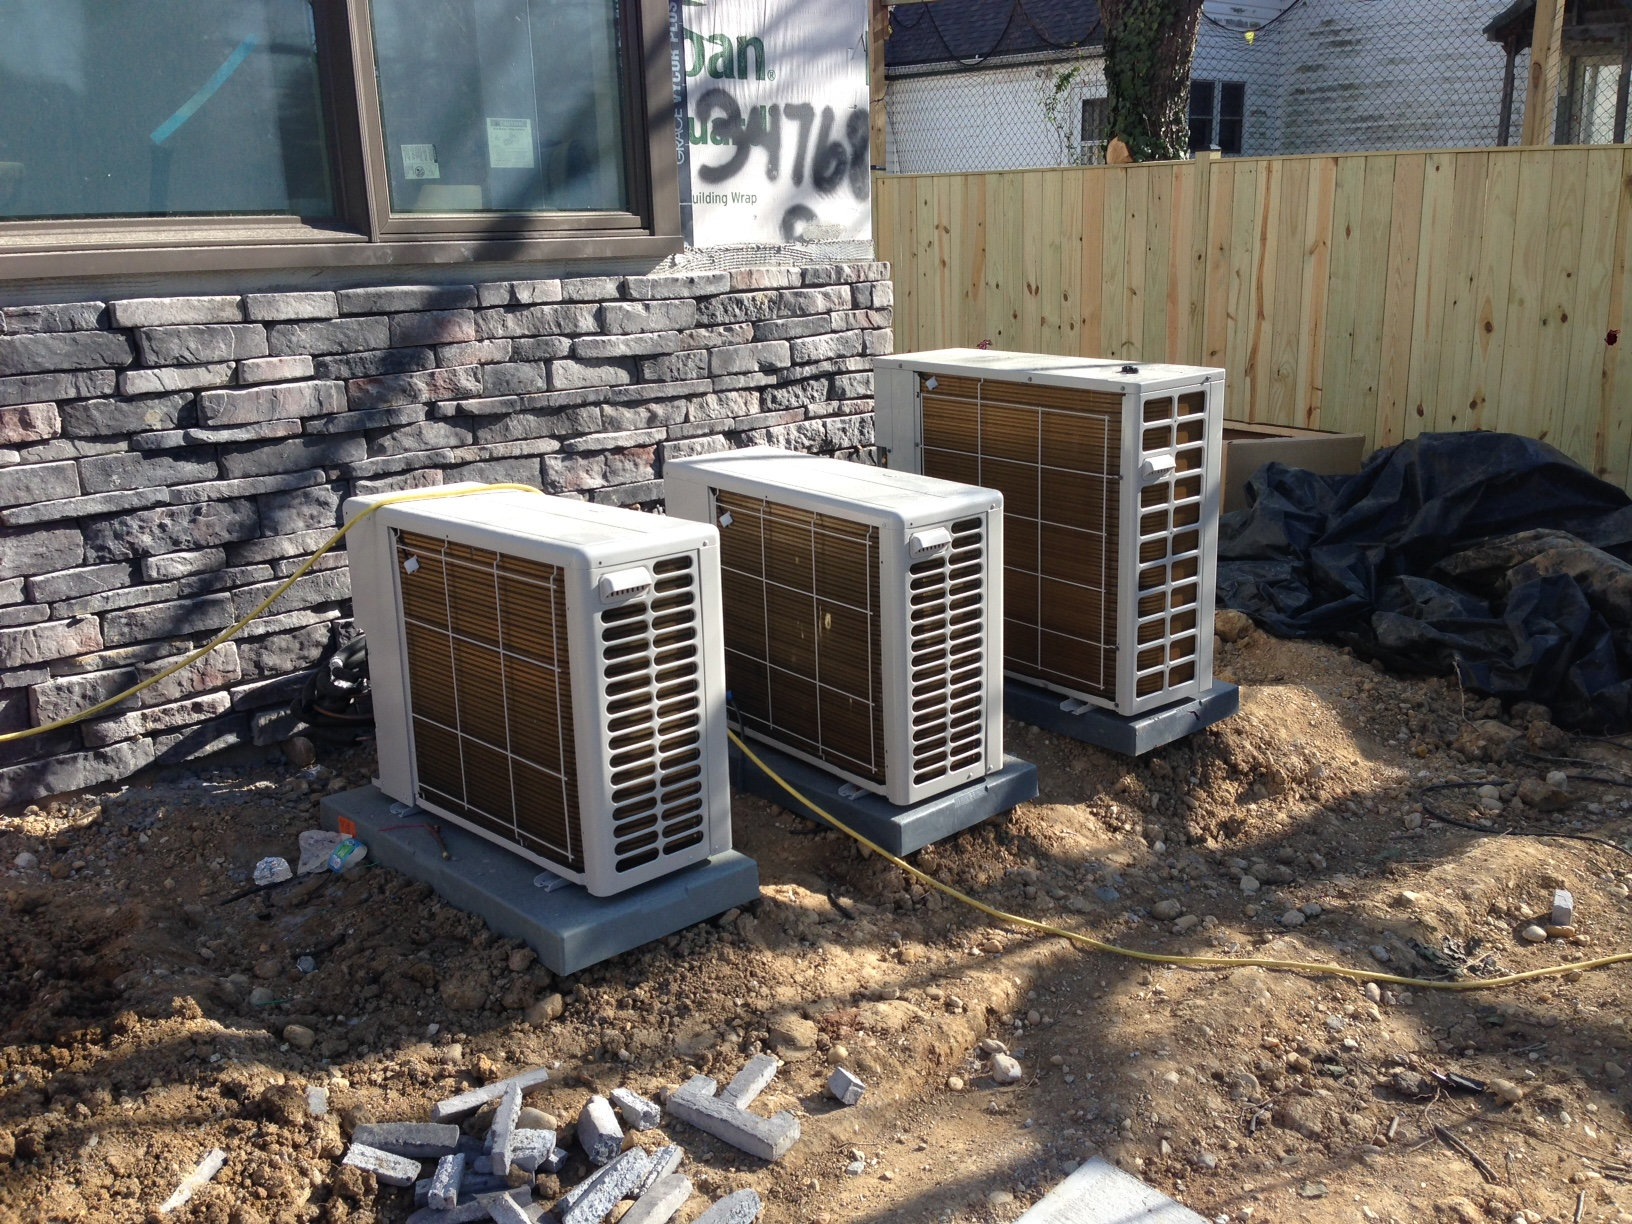 The minisplit condenser units installed. These will bring heat and cooling to 9 rooms throughout the house. Each room is individually controlled.